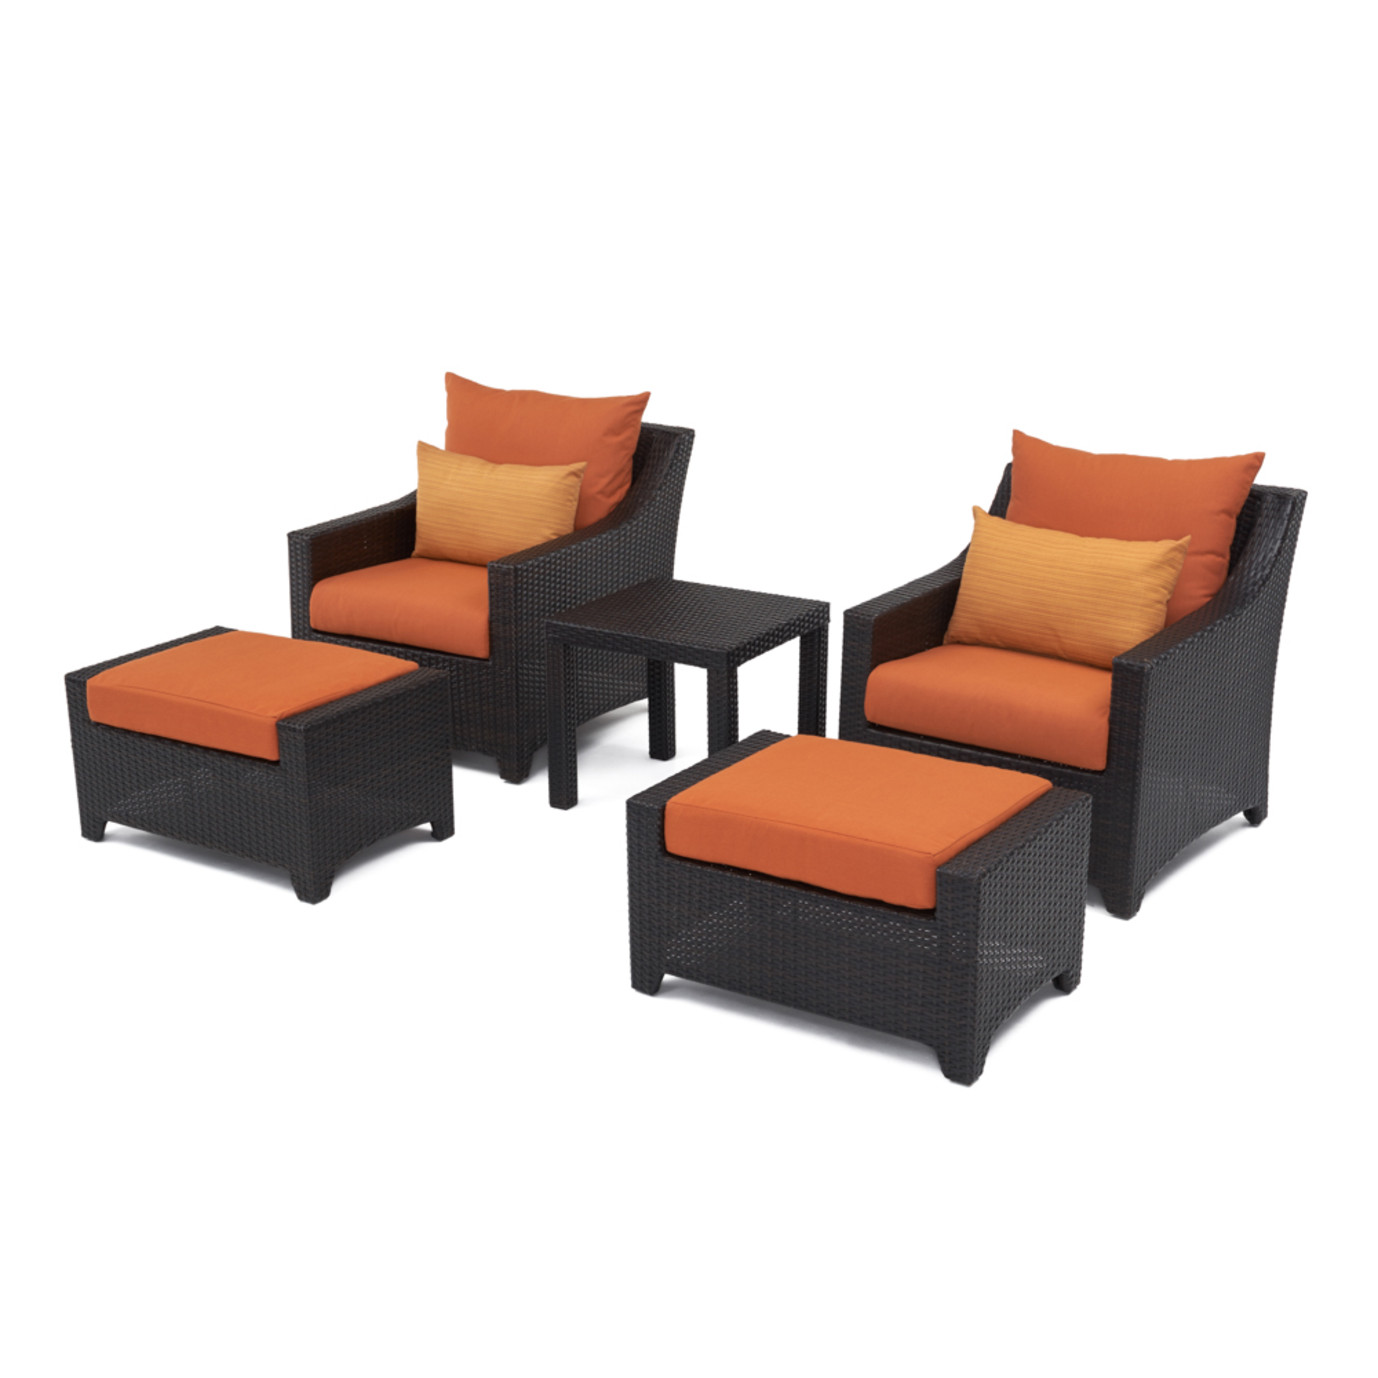 Deco™ 5pc Club Chair and Ottoman Set - Tikka Orange